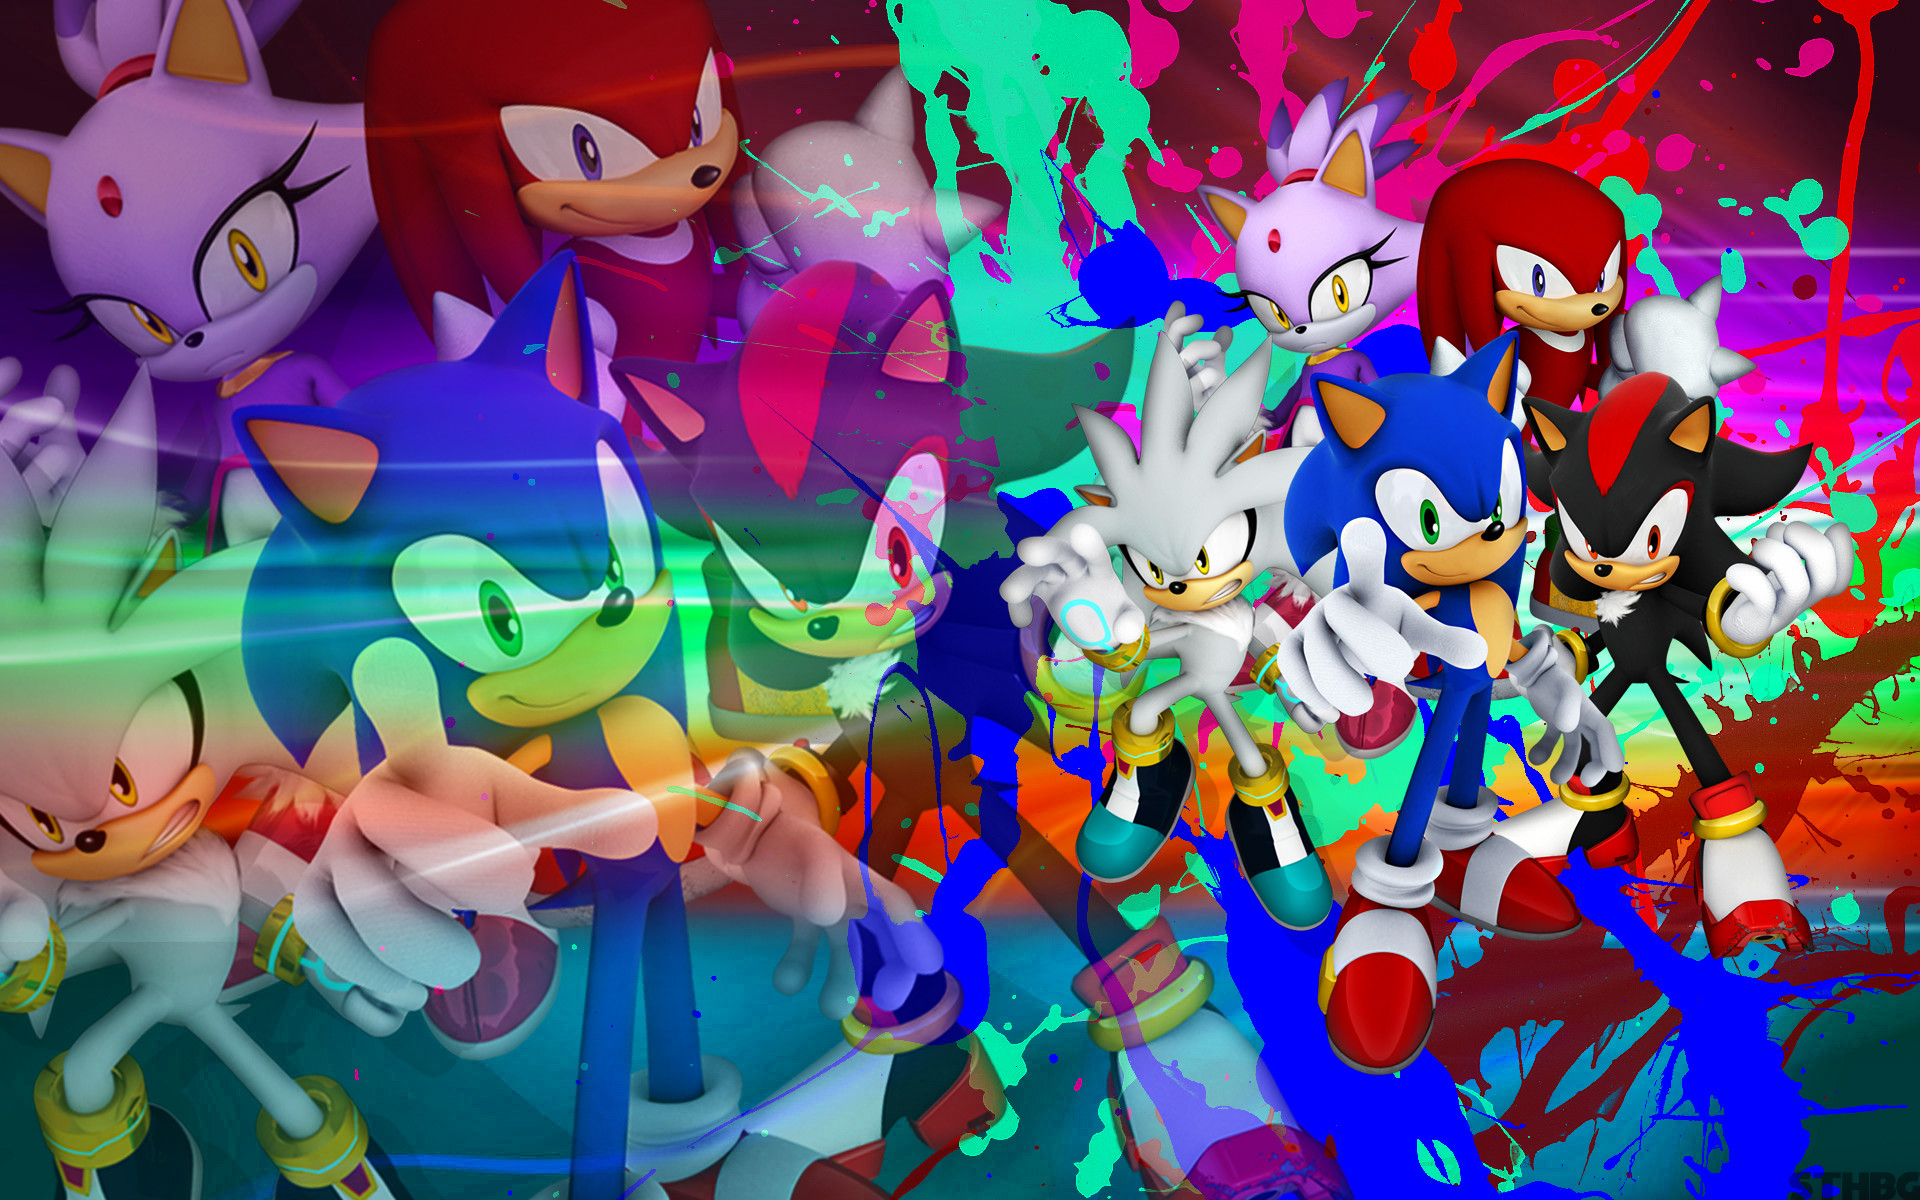 1920x1200 ... SonicTheHedgehogBG Sonic, Shadow, Silver, Blaze, Knuckles - Wallpaper  by SonicTheHedgehogBG